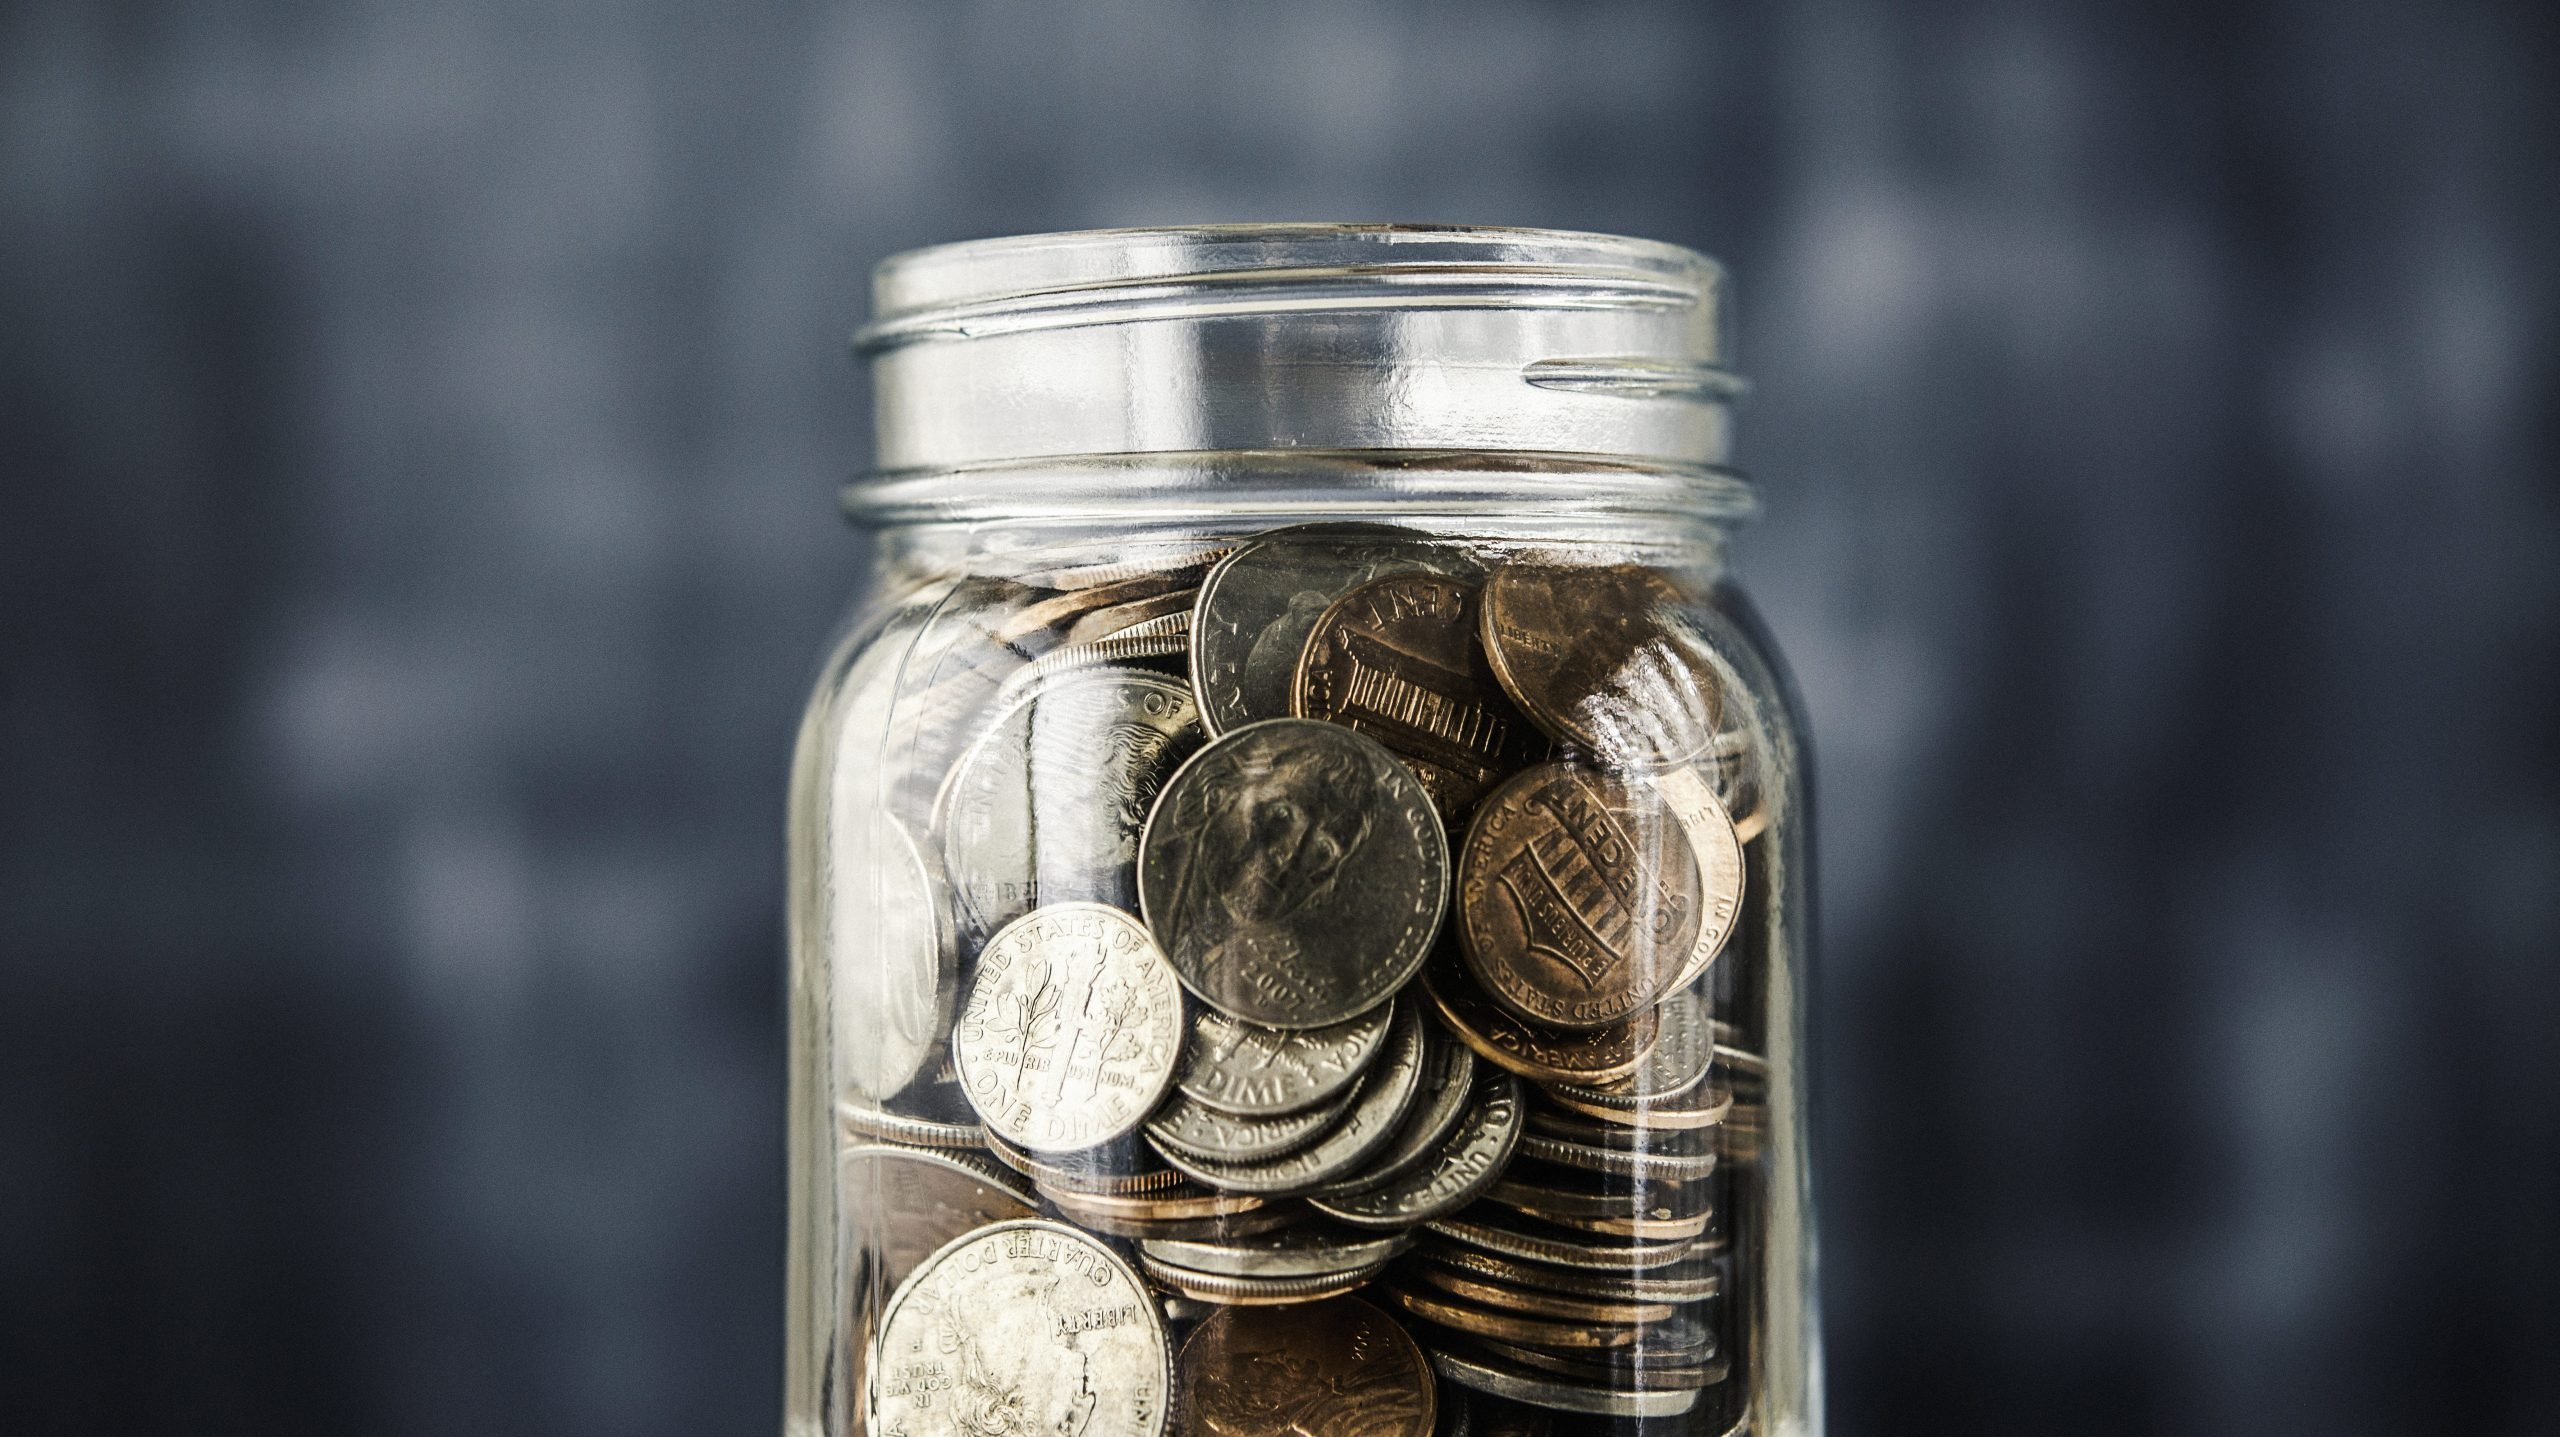 Savings jar filled with coins